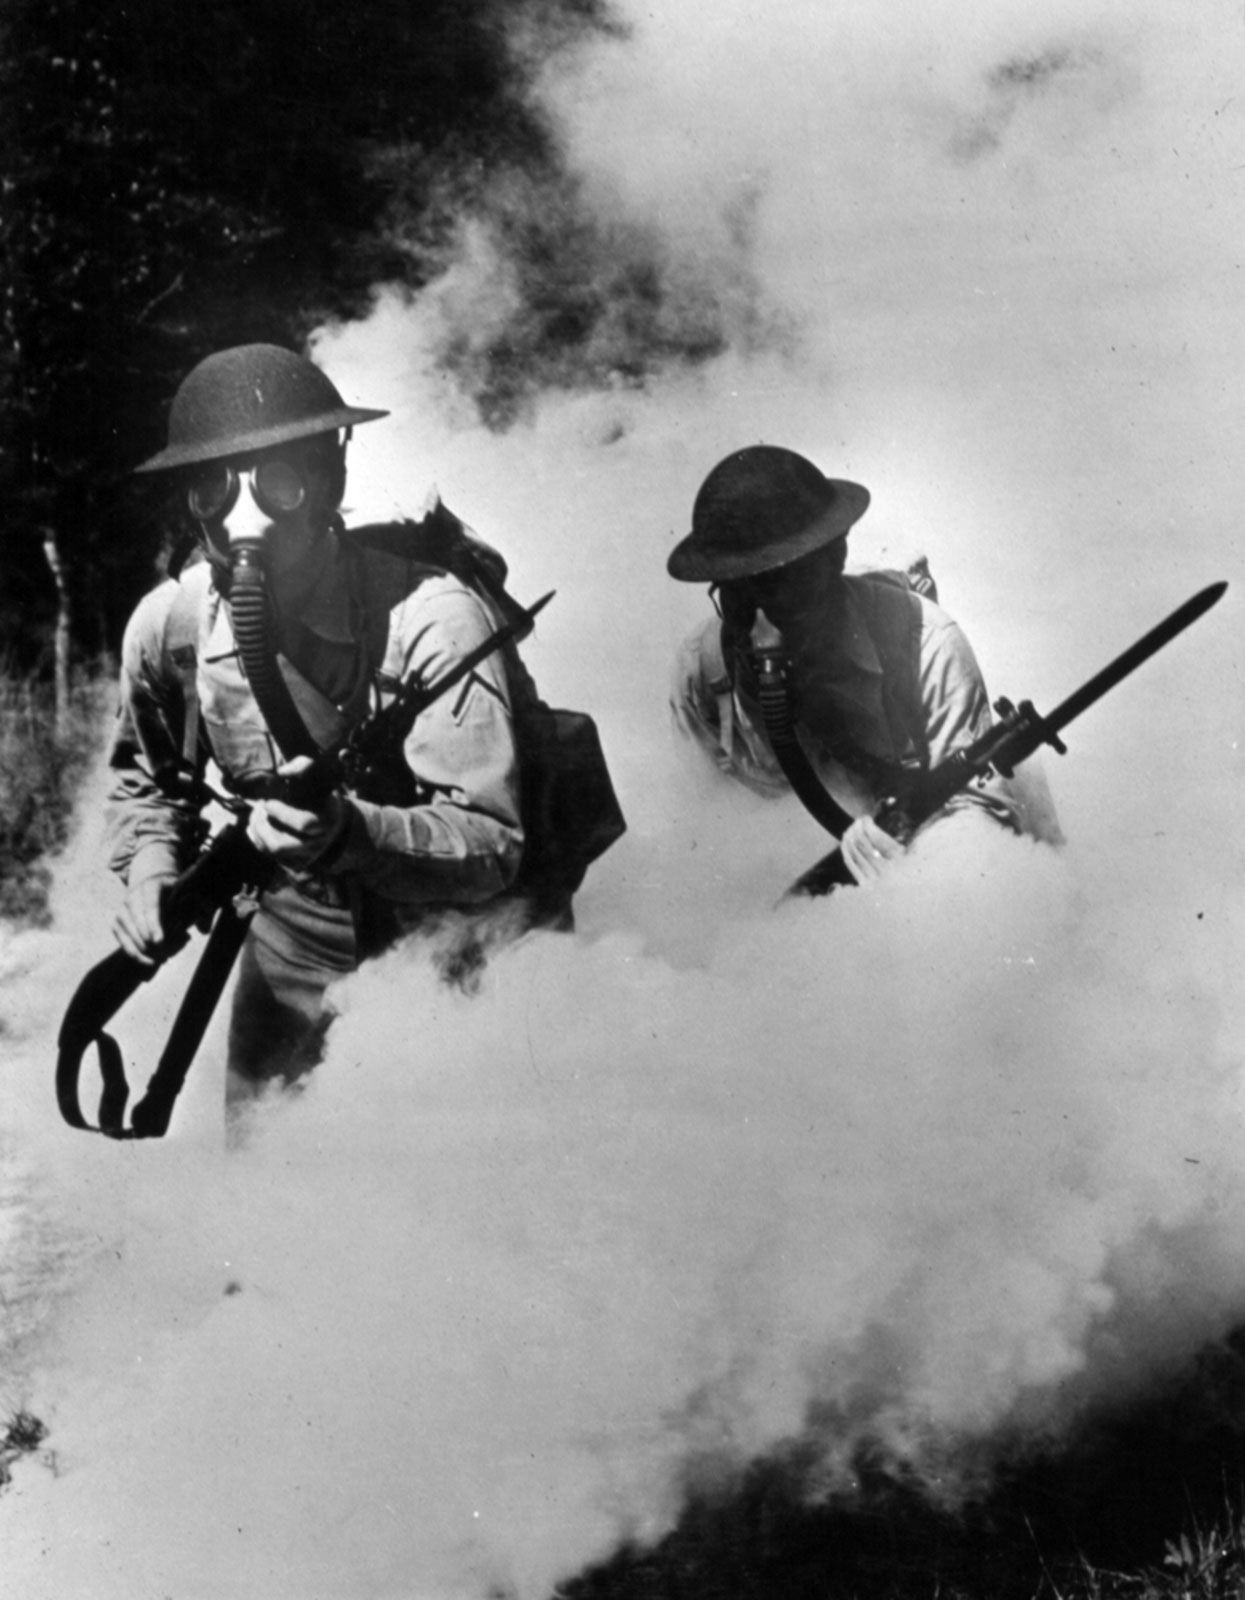 In WWI they used chemical gases to posion people to death. They ...